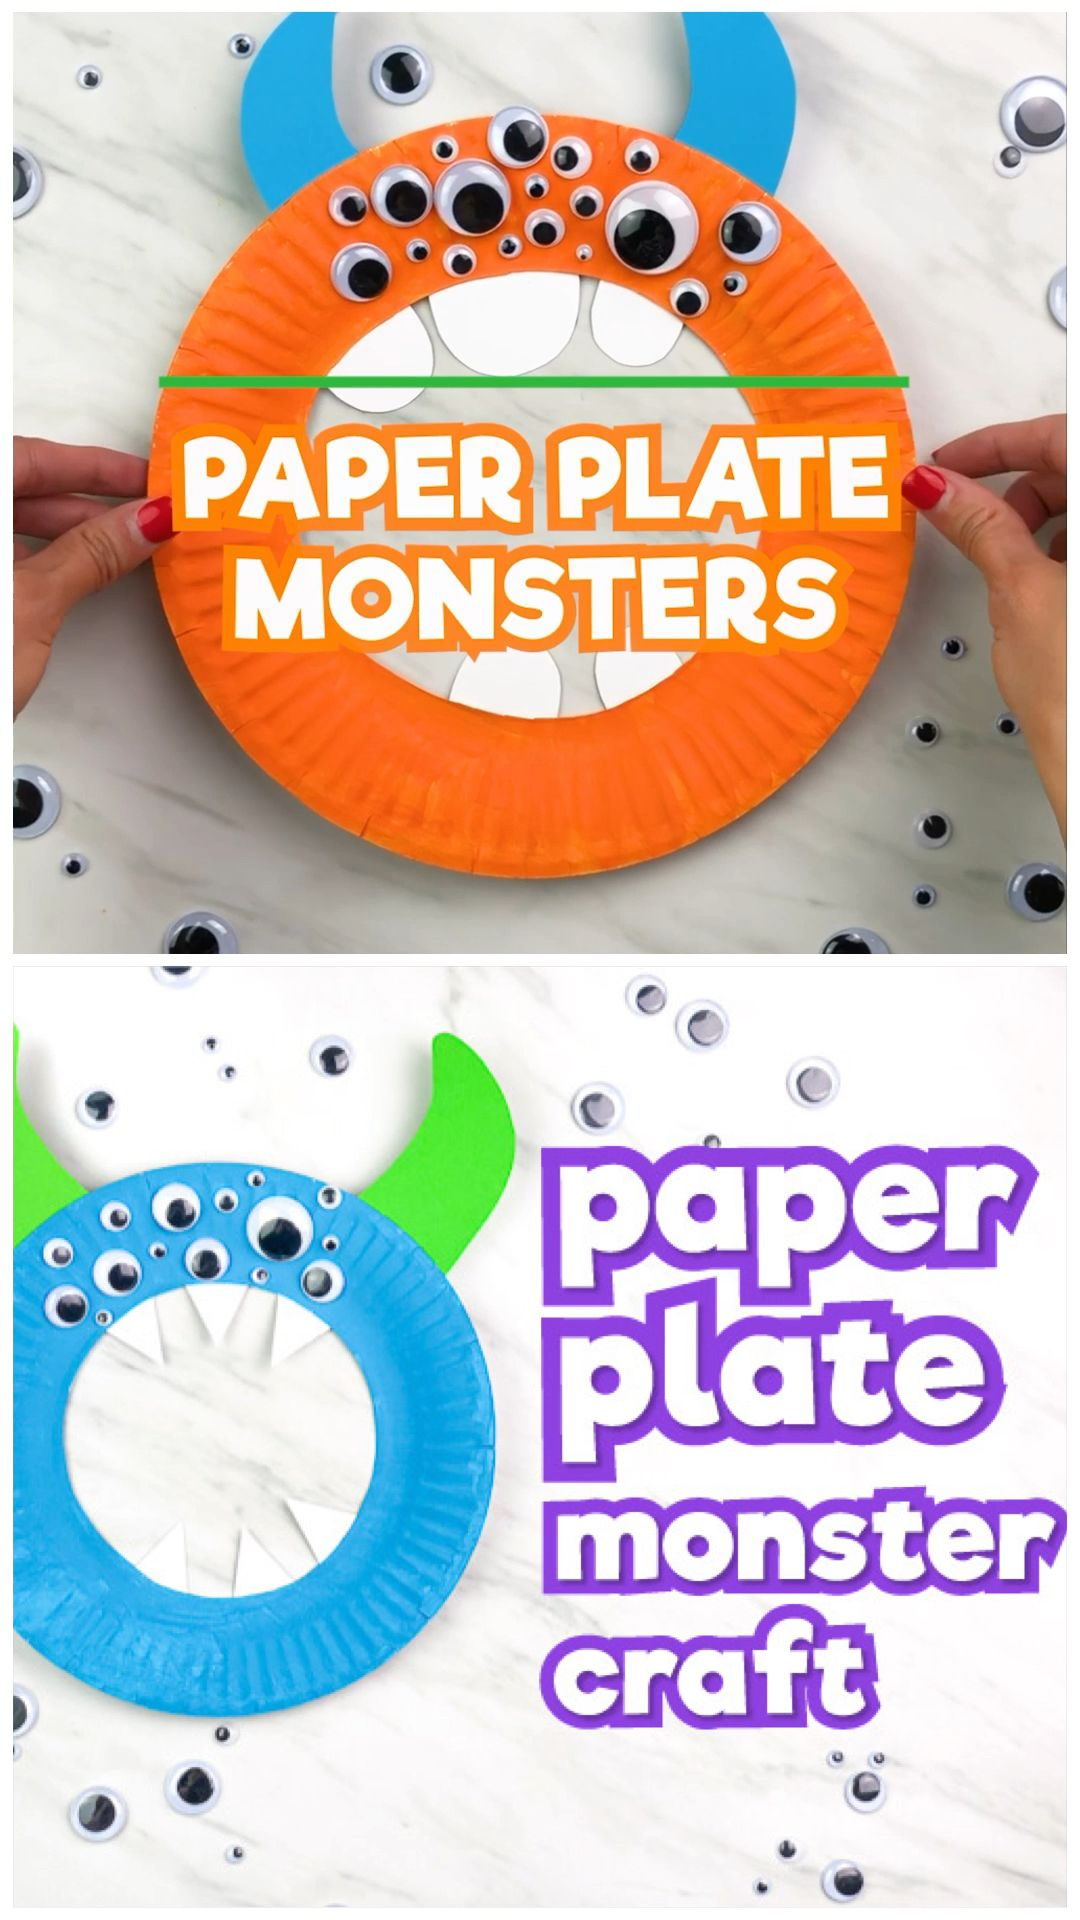 This paper plate monster craft is a fun and easy Halloween craft kids will love to make. It's a great activity for classroom parties or for kids to make at home. Works well with preschool, prek and kindergarten children or for elementary kids. Plus, it comes with a free printable template.   #simpleeverydaymom #paperplatecrafts #kidscrafts #craftsforkids #kidsactivities #monstercrafts #halloween #halloweencraftsforkids #holidays #preschoolers #prek #kindergarten